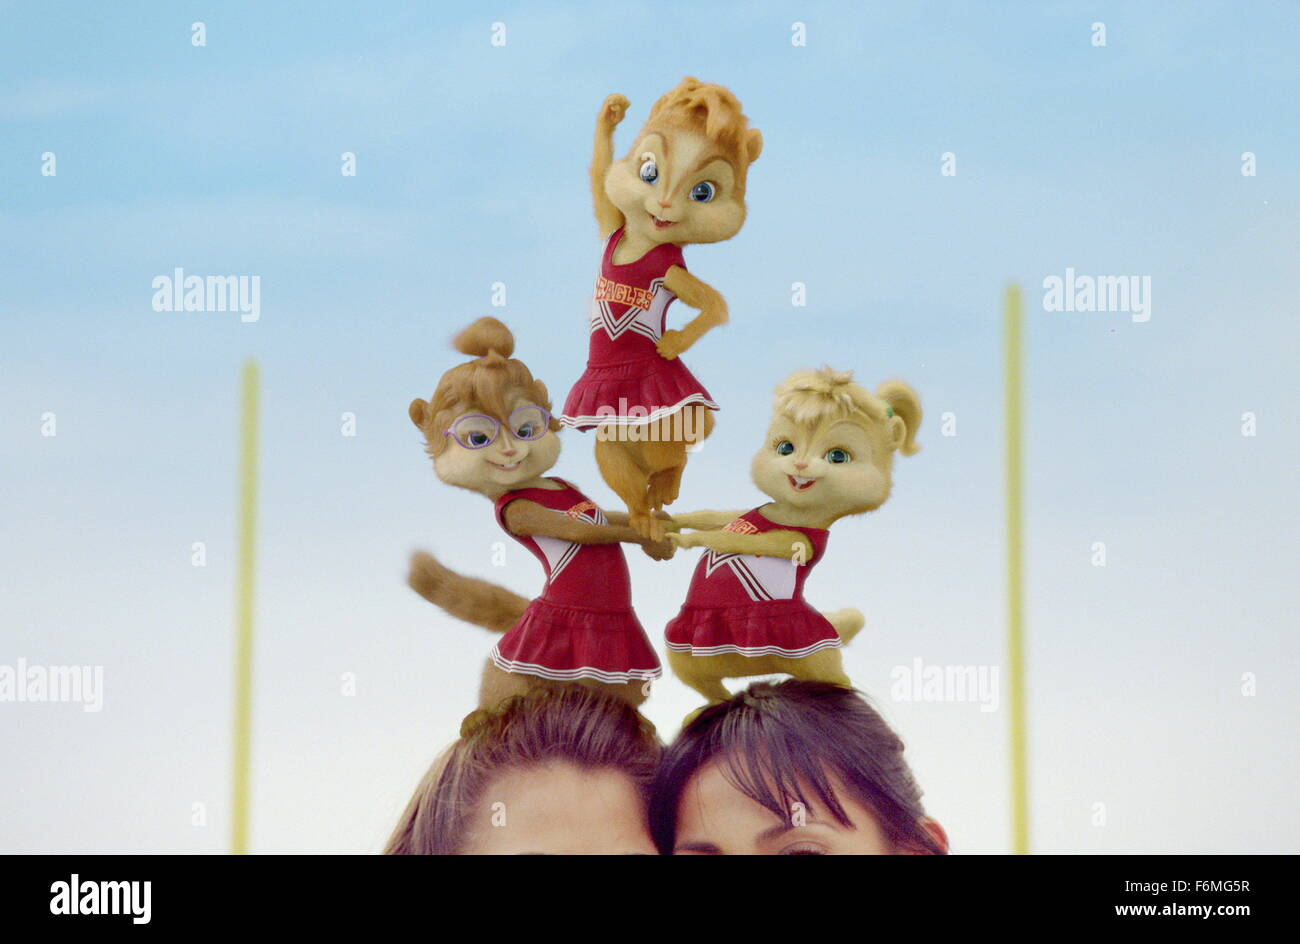 Alvin And The Chipmunks Alvin And Brittany brittany film title alvin and the chipmunks stock photos